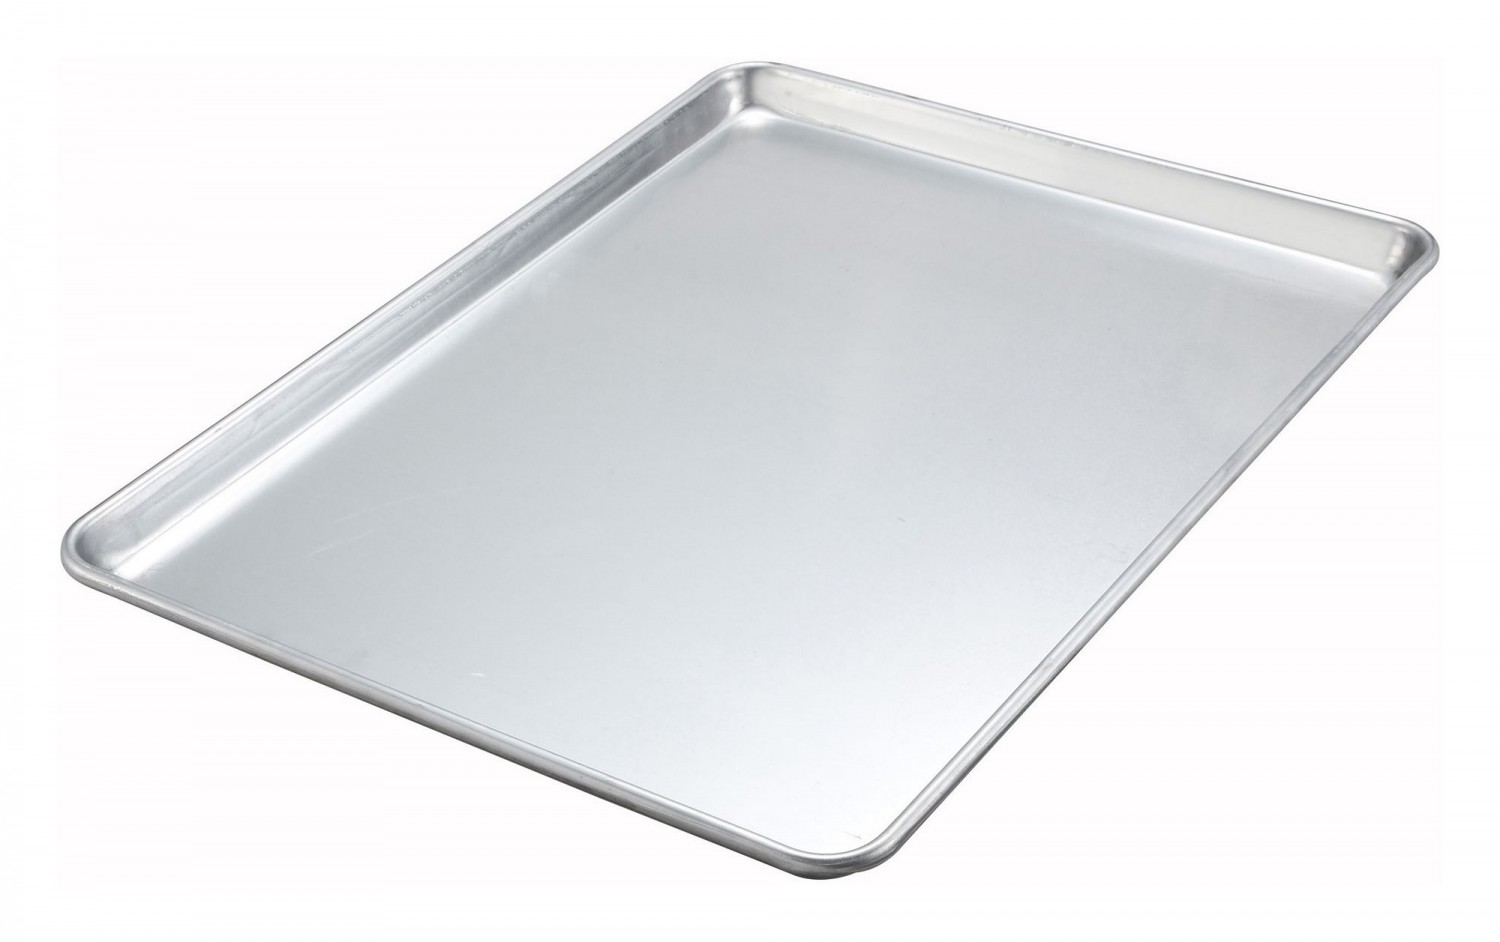 Winco ALXP-1622 Two-Third Size Aluminum Sheet Pan 16& x 22&